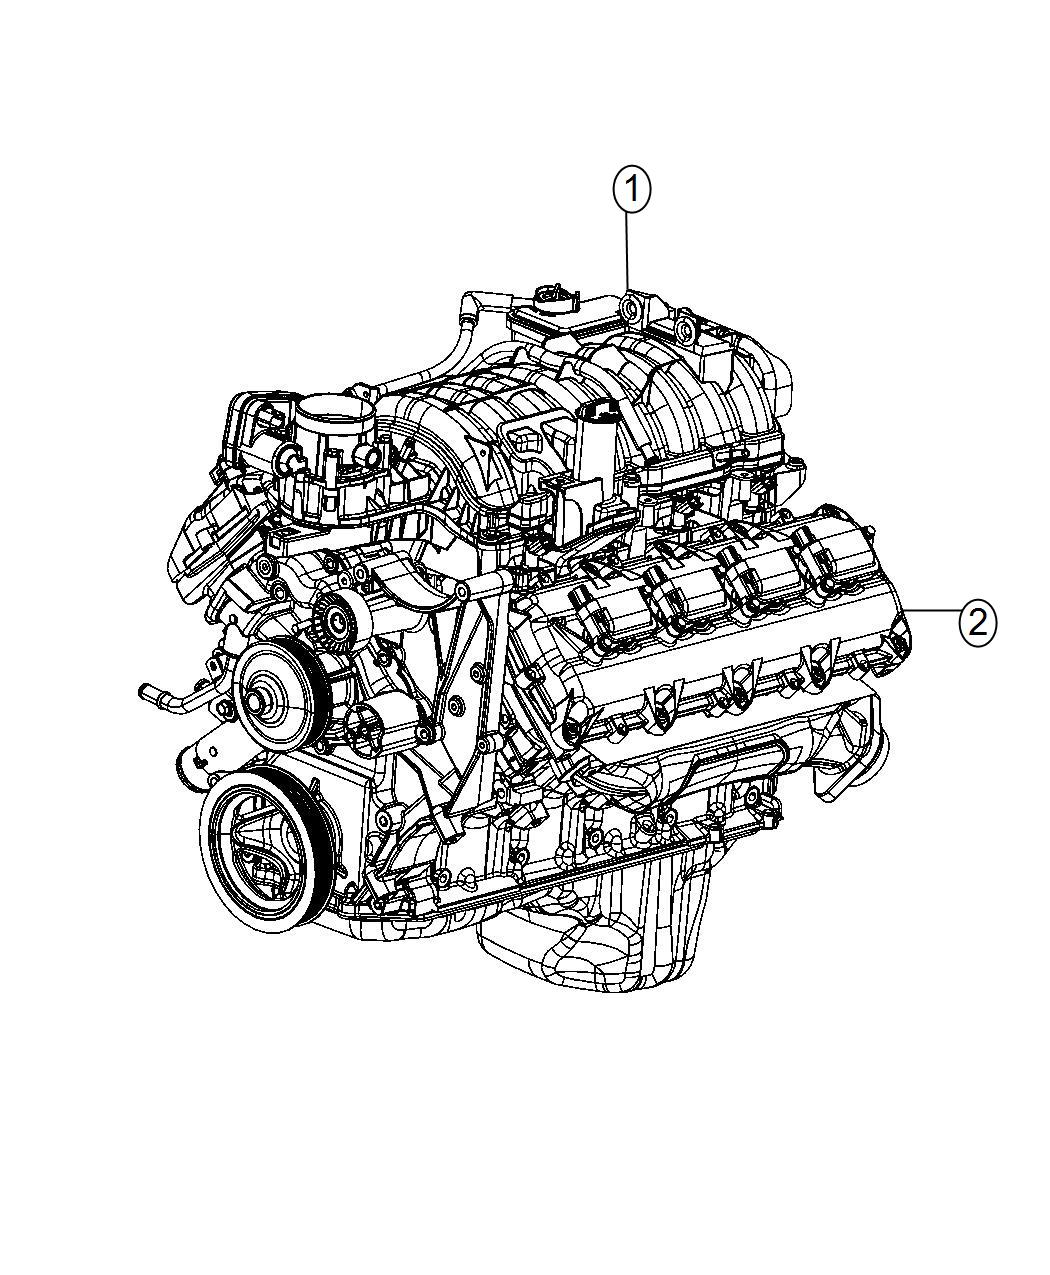 Dodge Ram 1500 Engine  Long Block  Service  Mds  Assembly